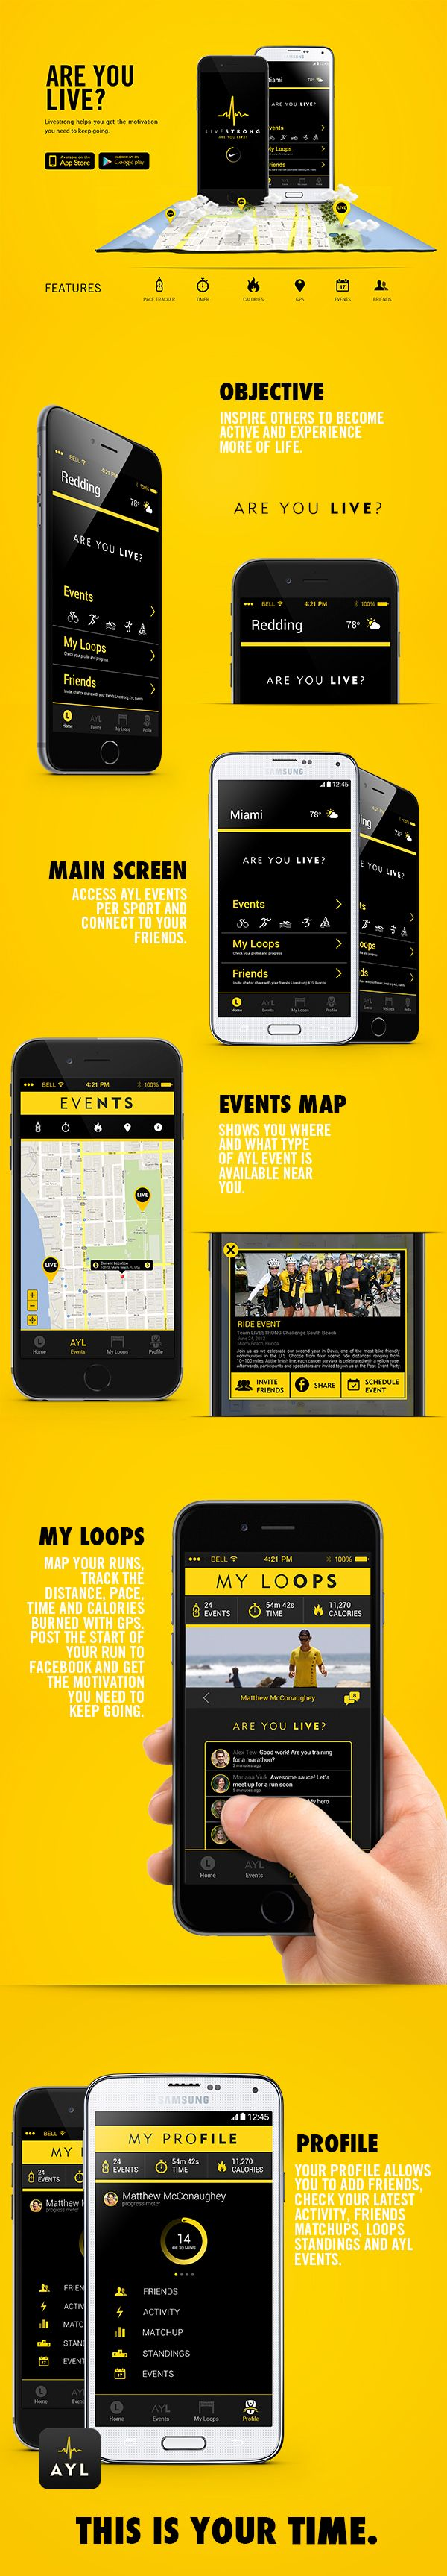 Livestrong // Are You Live? on Behance